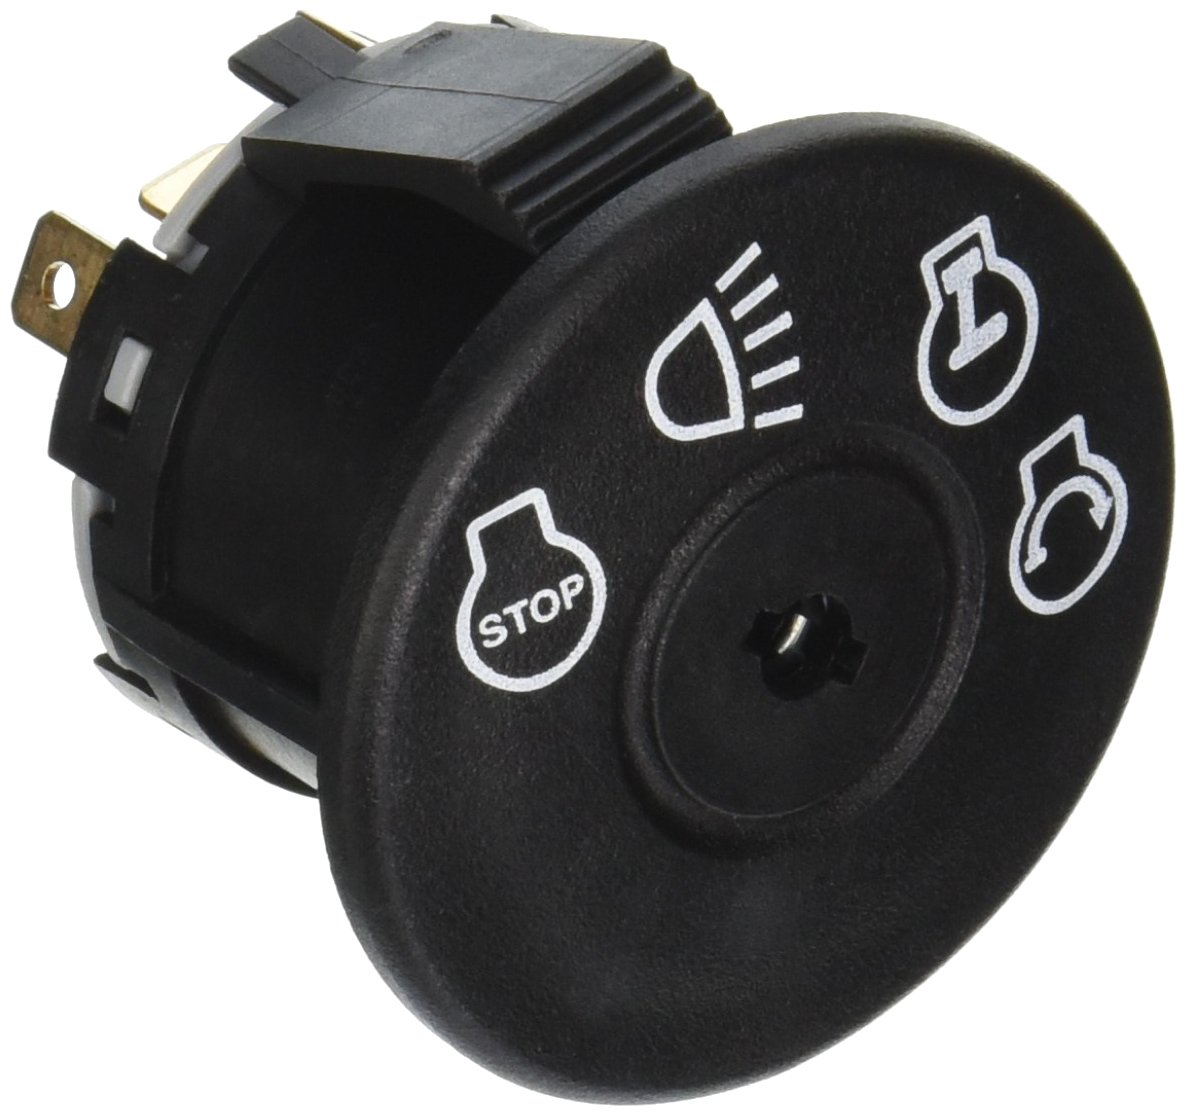 Stens 430-445 Starter Switch Replaces MTD 925-1741 Murray 94762MA AYP 175566 175442 John Deere GY20074 Husqvarna 532 17 55-66 Murray 94762 AYP 163968 MTD 725-1741